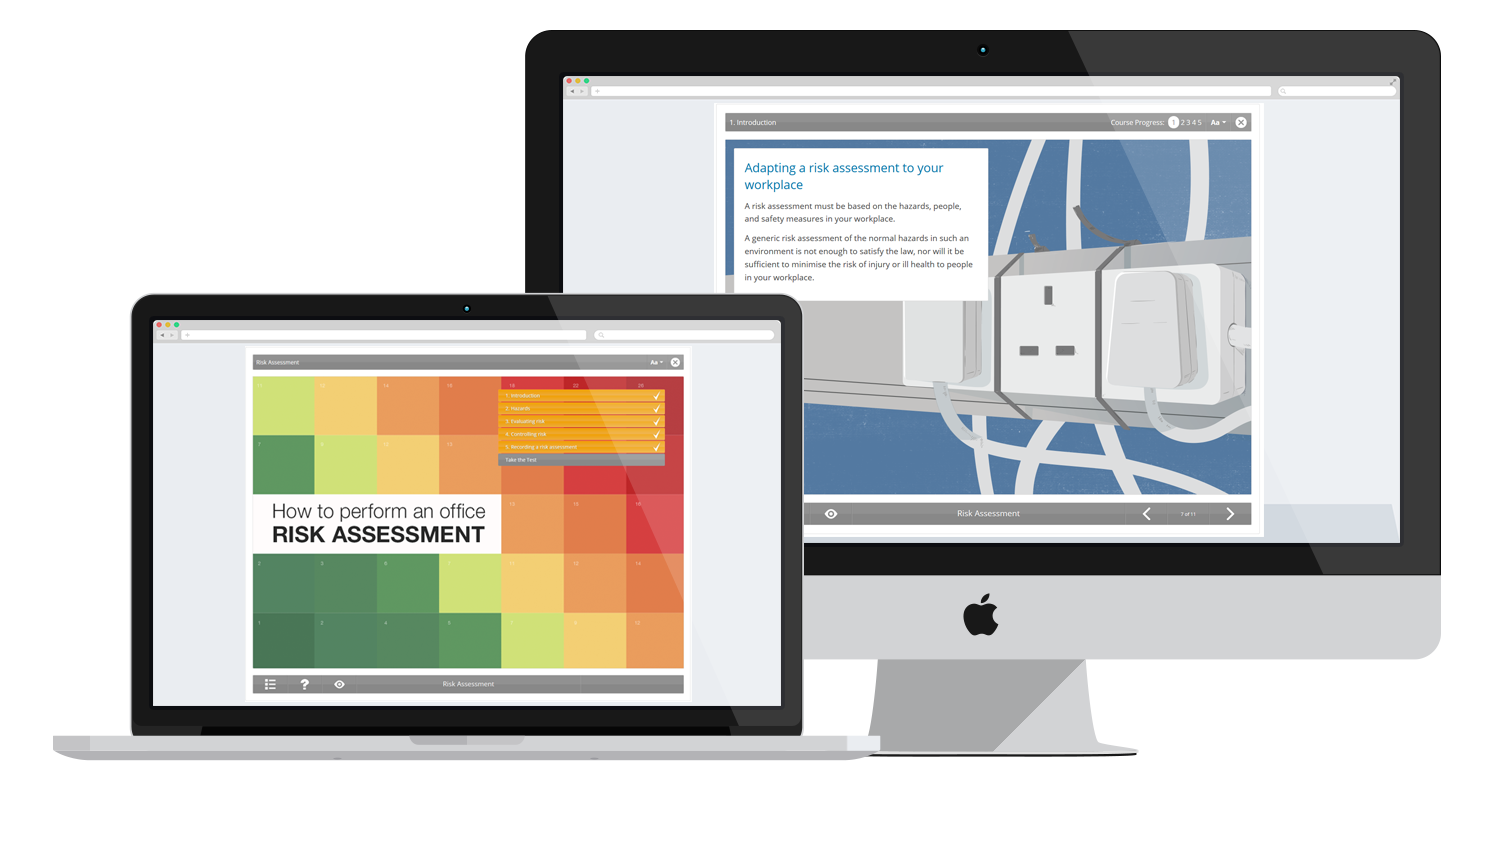 We've launched a simple e-learning course to help you perform risk assessments